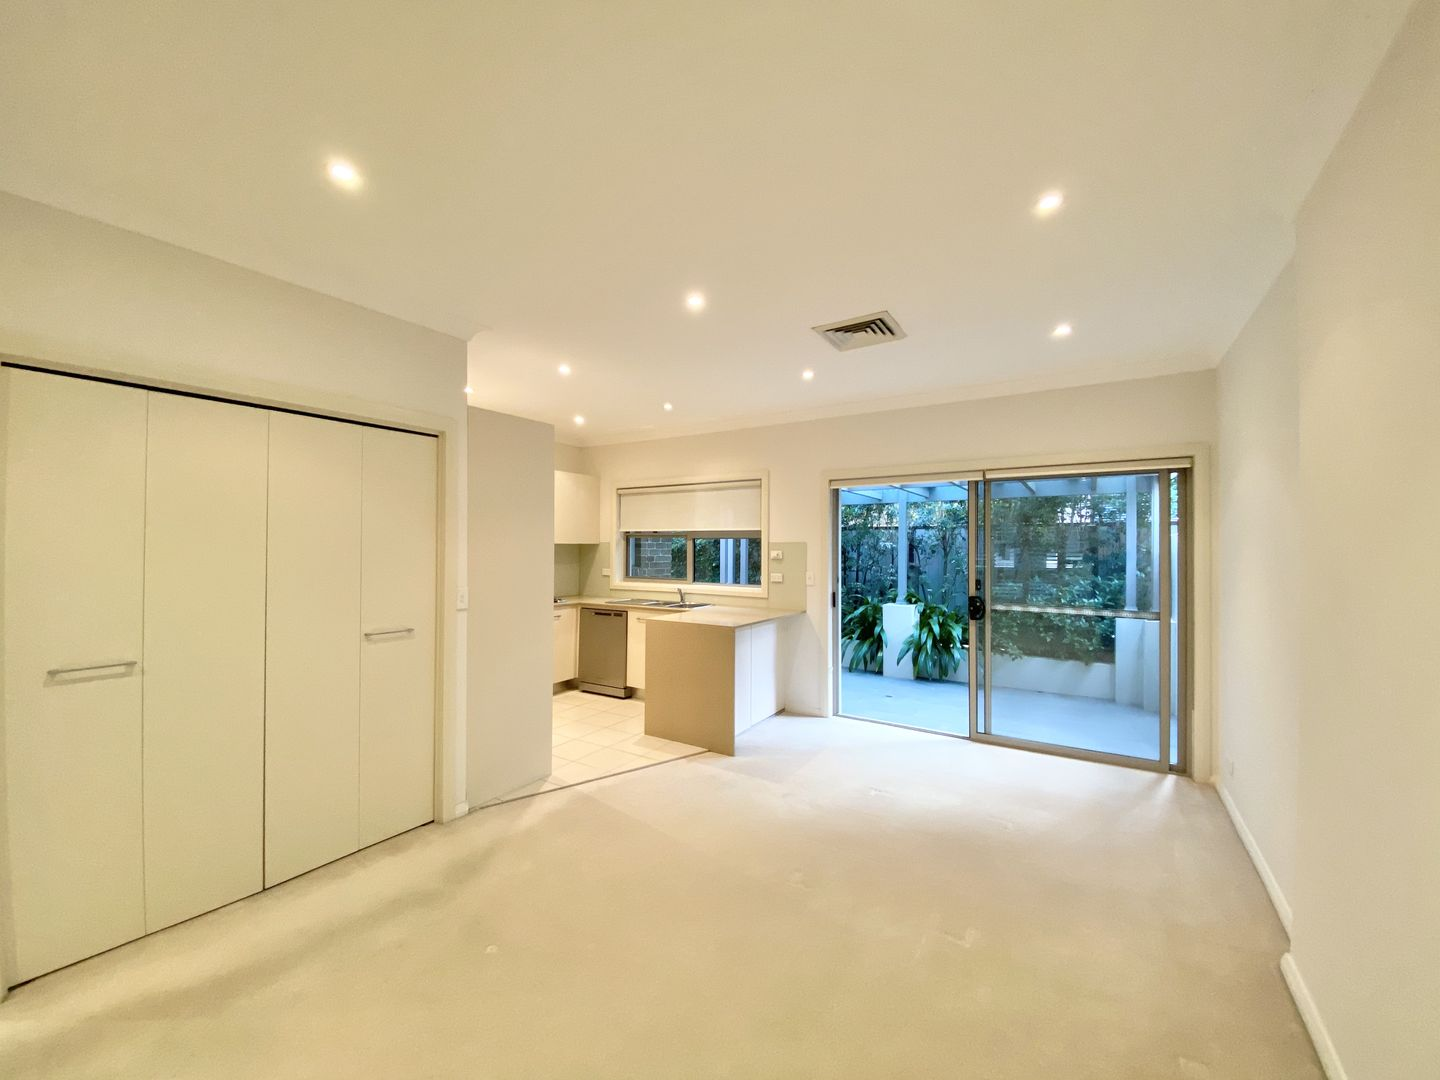 2/59-61 Dolans Road, Woolooware NSW 2230, Image 0